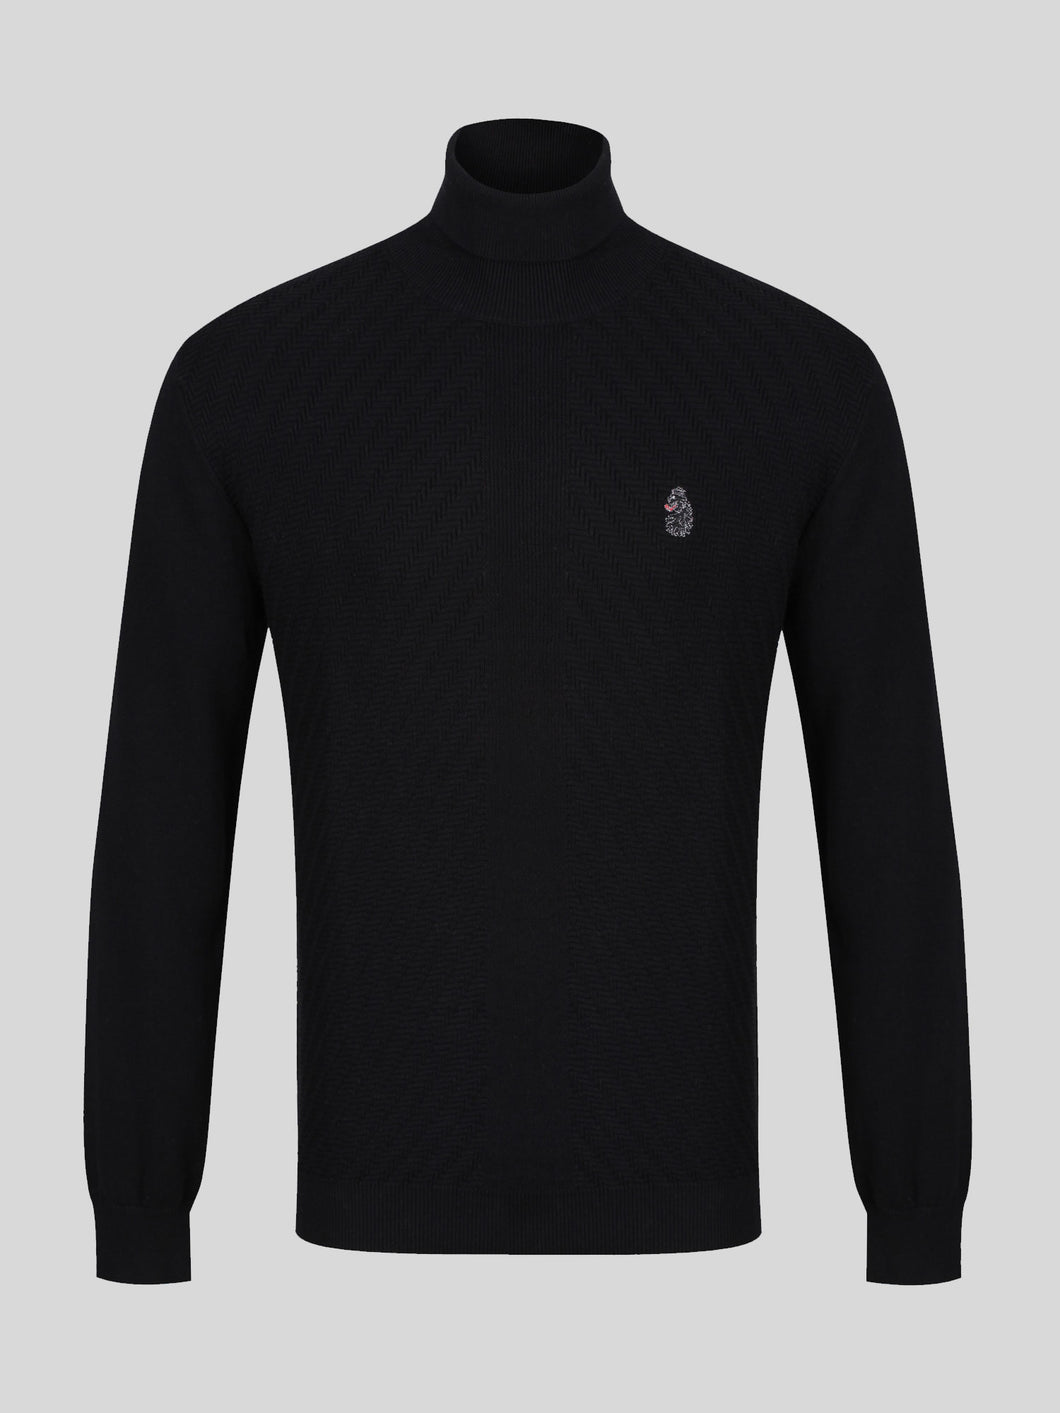 Luke 1977 Trayman Roll Neck Jumper Black